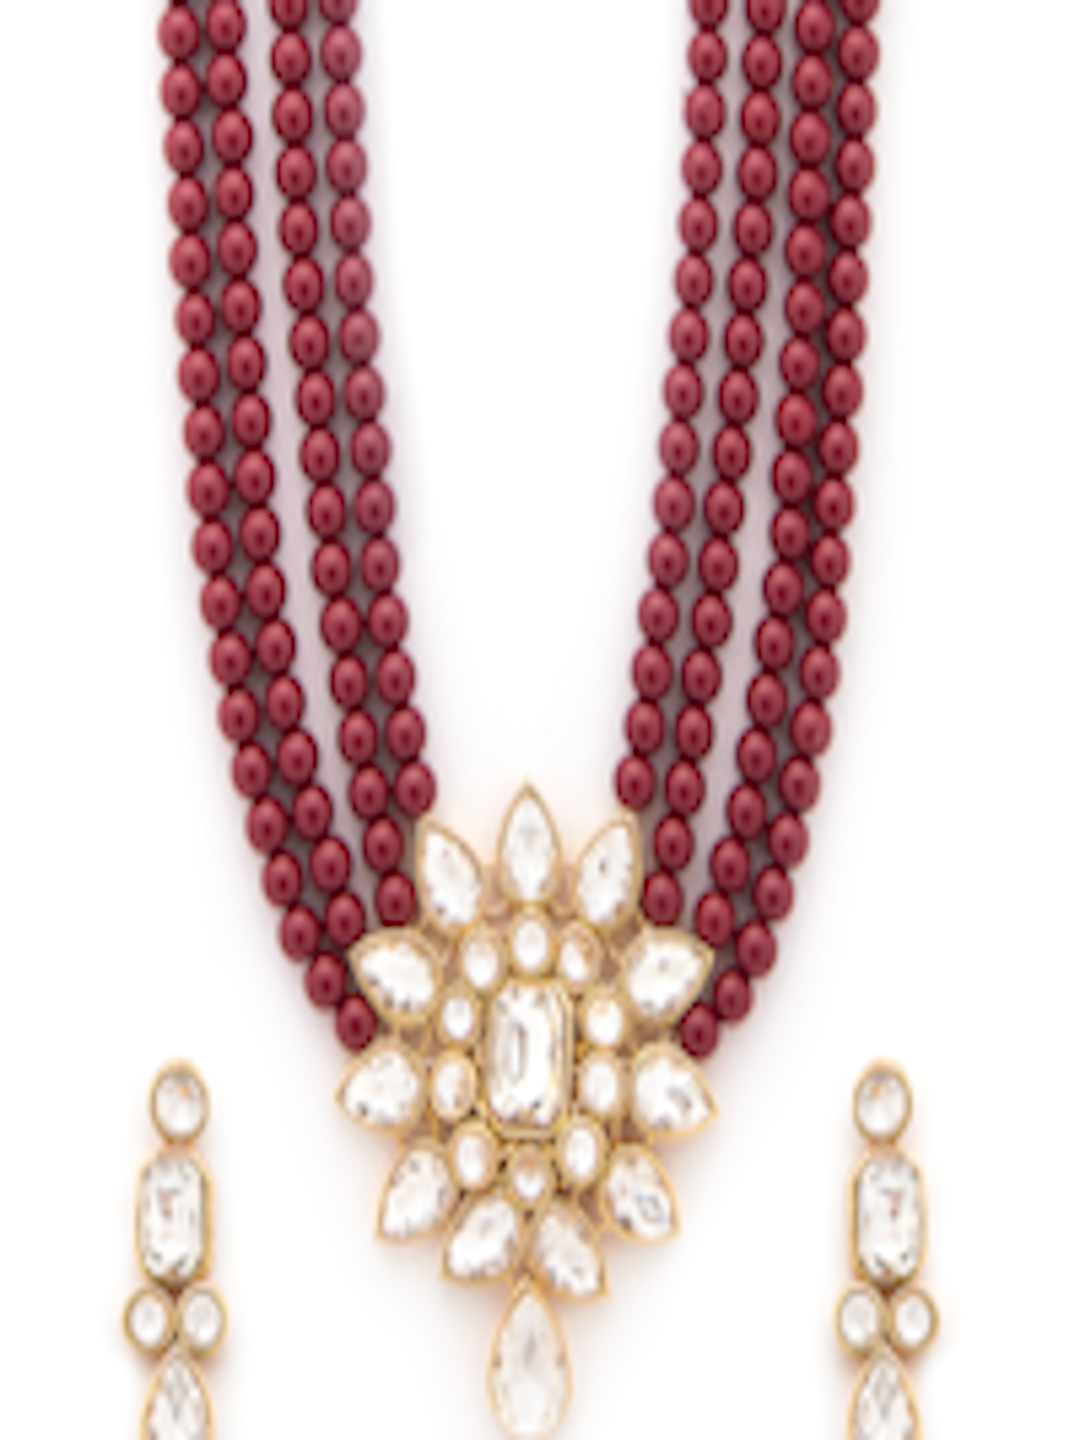 c62a49f240e76 Buy Rubans Gold Toned Faux Ruby Beads Multilayer Floral Necklace Set - -  Accessories for Women